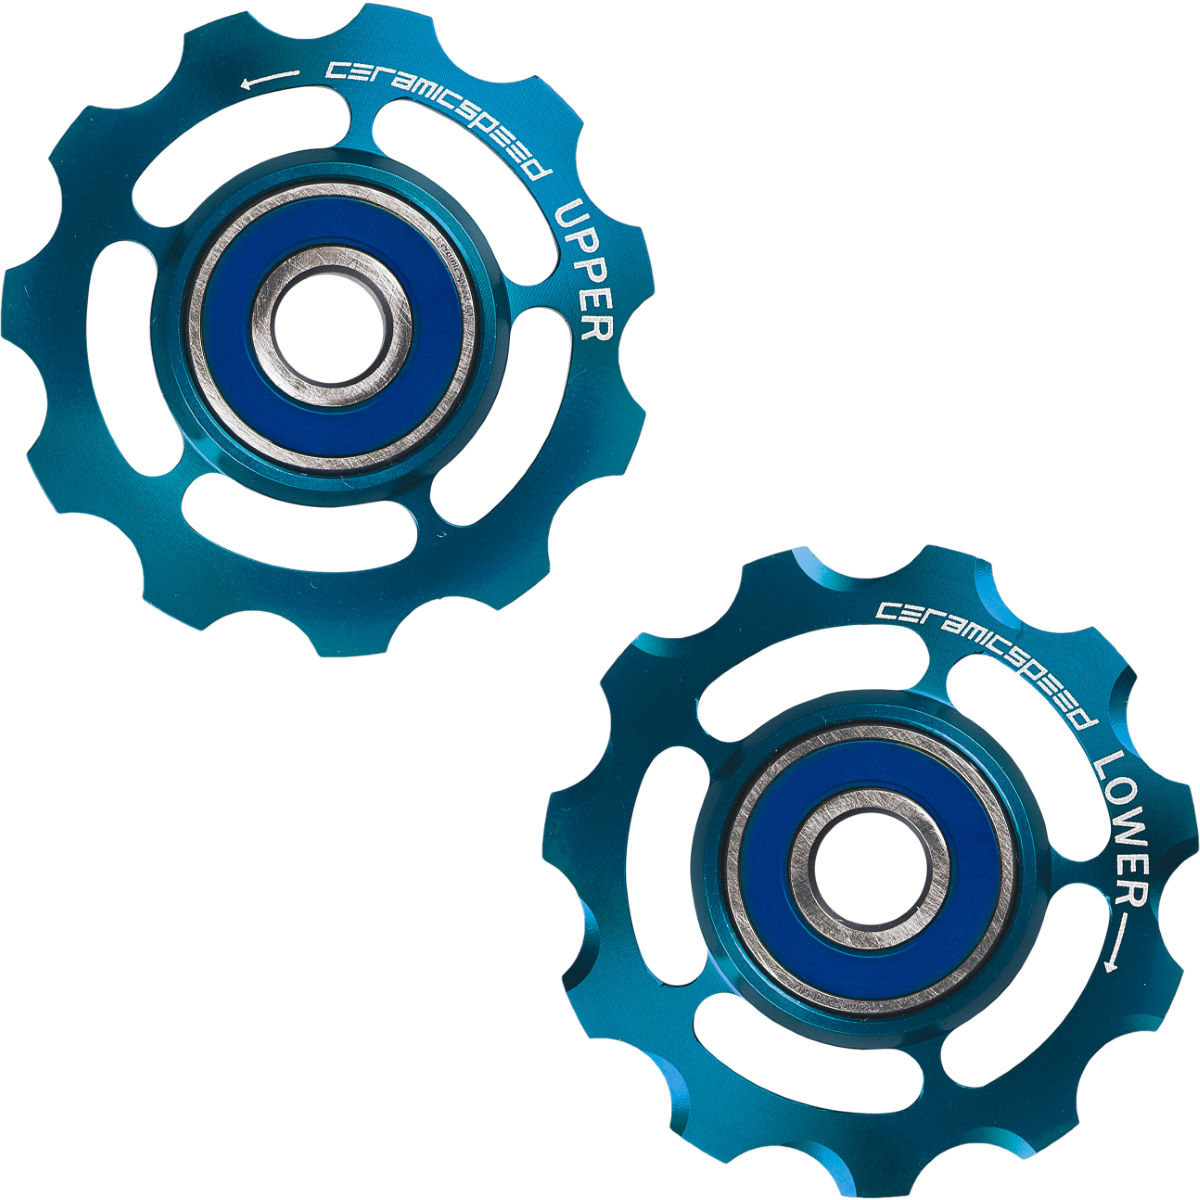 CeramicSpeed 11 Speed Pulley Wheels in Limited Edition Blue - Cambios traseros